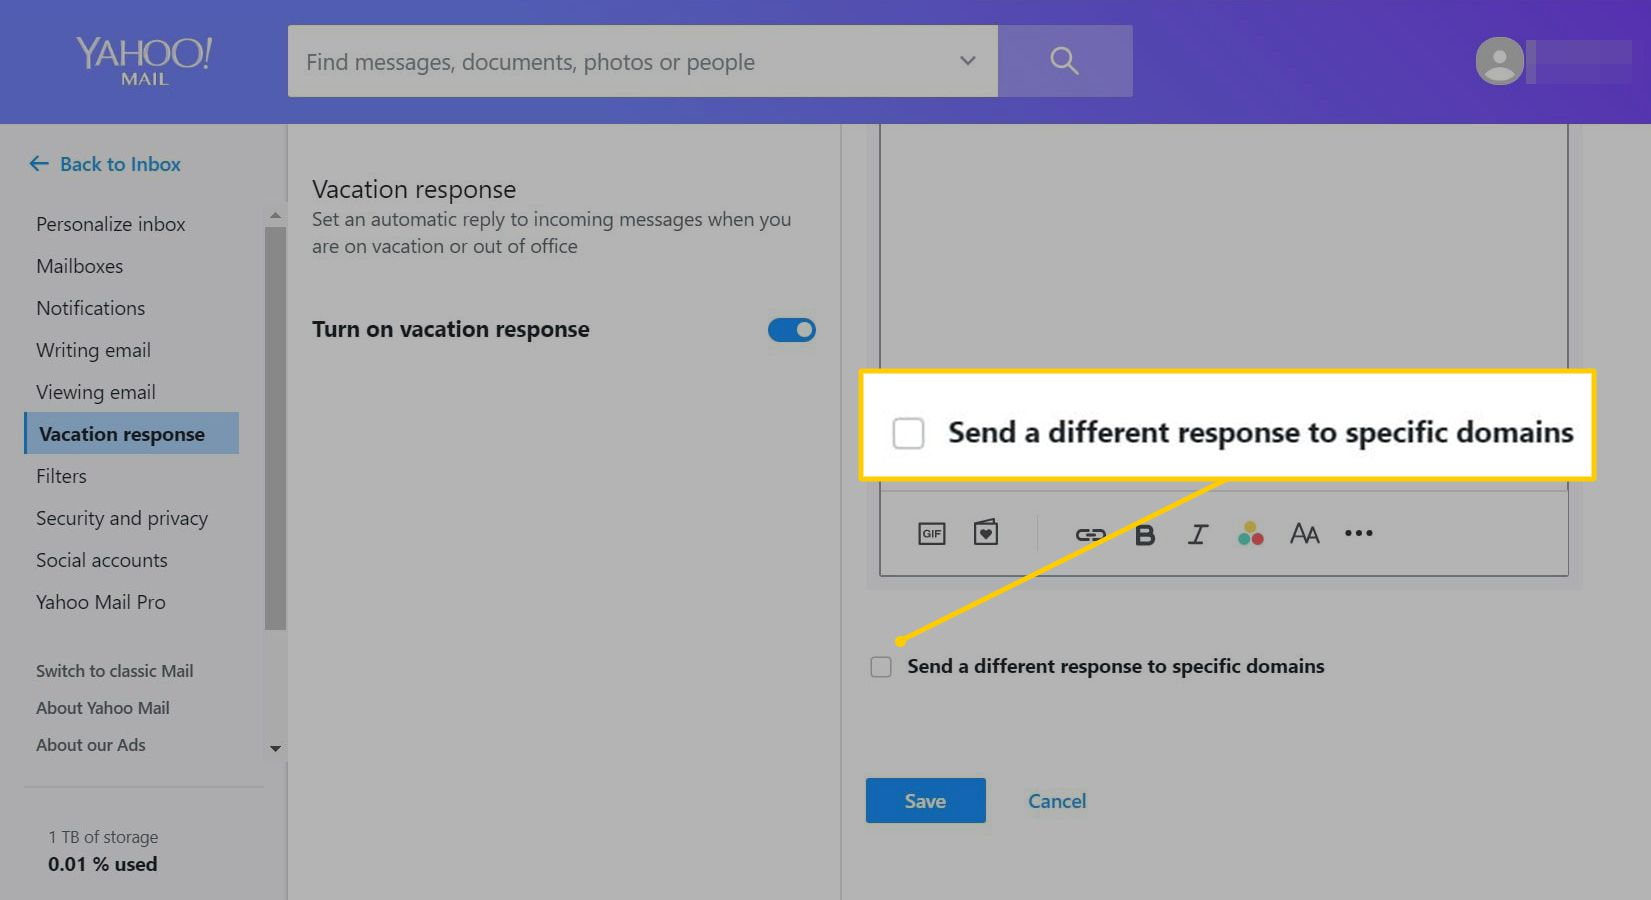 Send a different response to specific domains option in Yahoo Mail